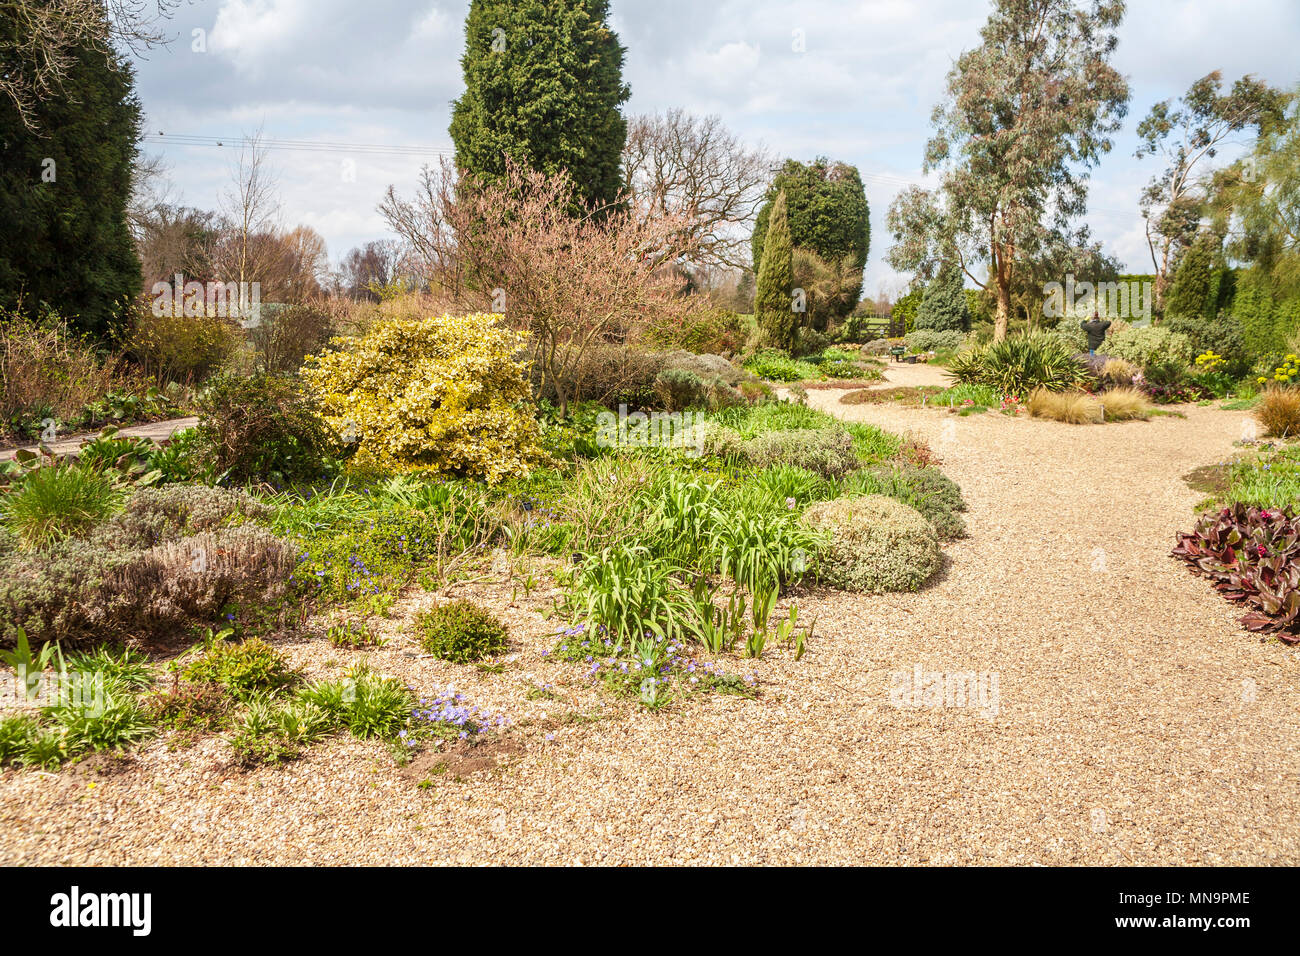 Landscaped Garden And Paths: The Dry Gravel Garden For ...